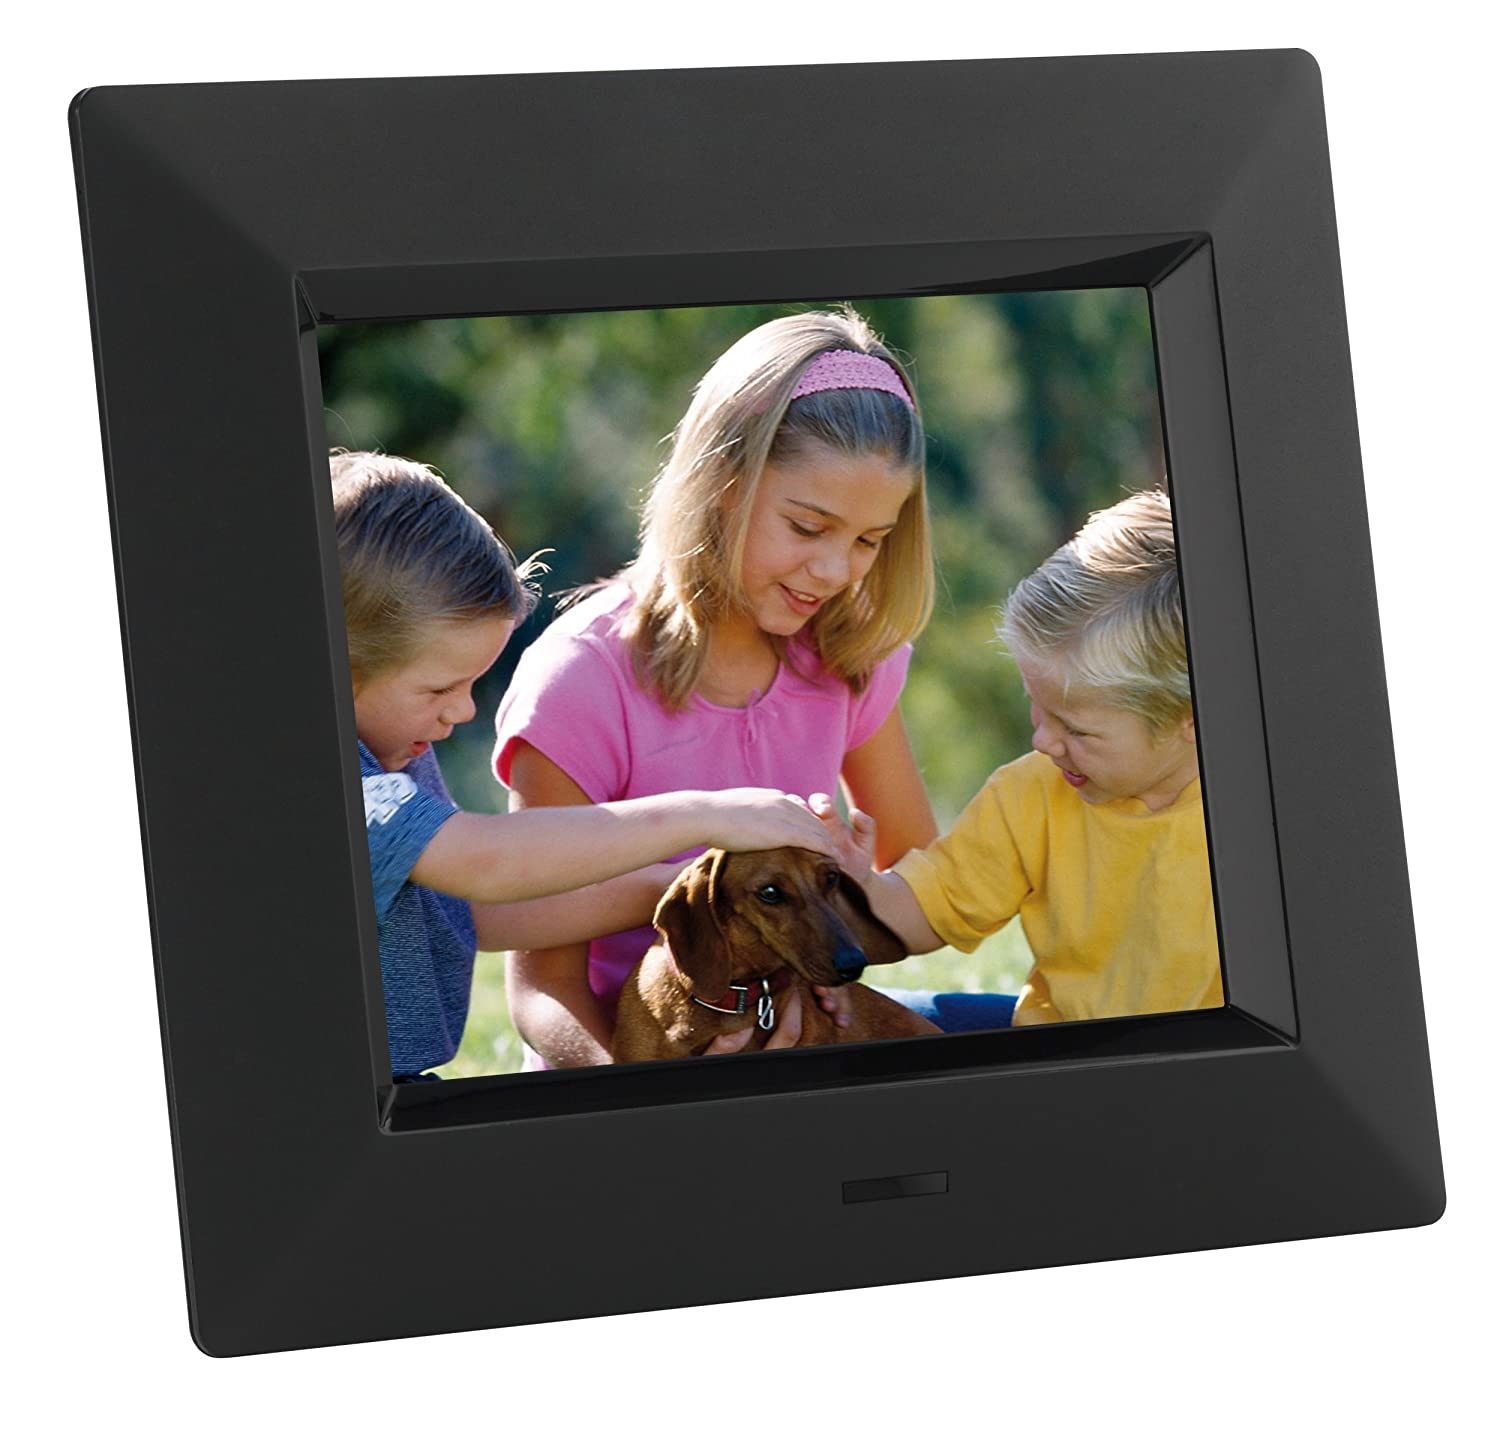 Amazon.com : Giinii GN-812 8-Inch Digital Picture Frame : Camera & Photo